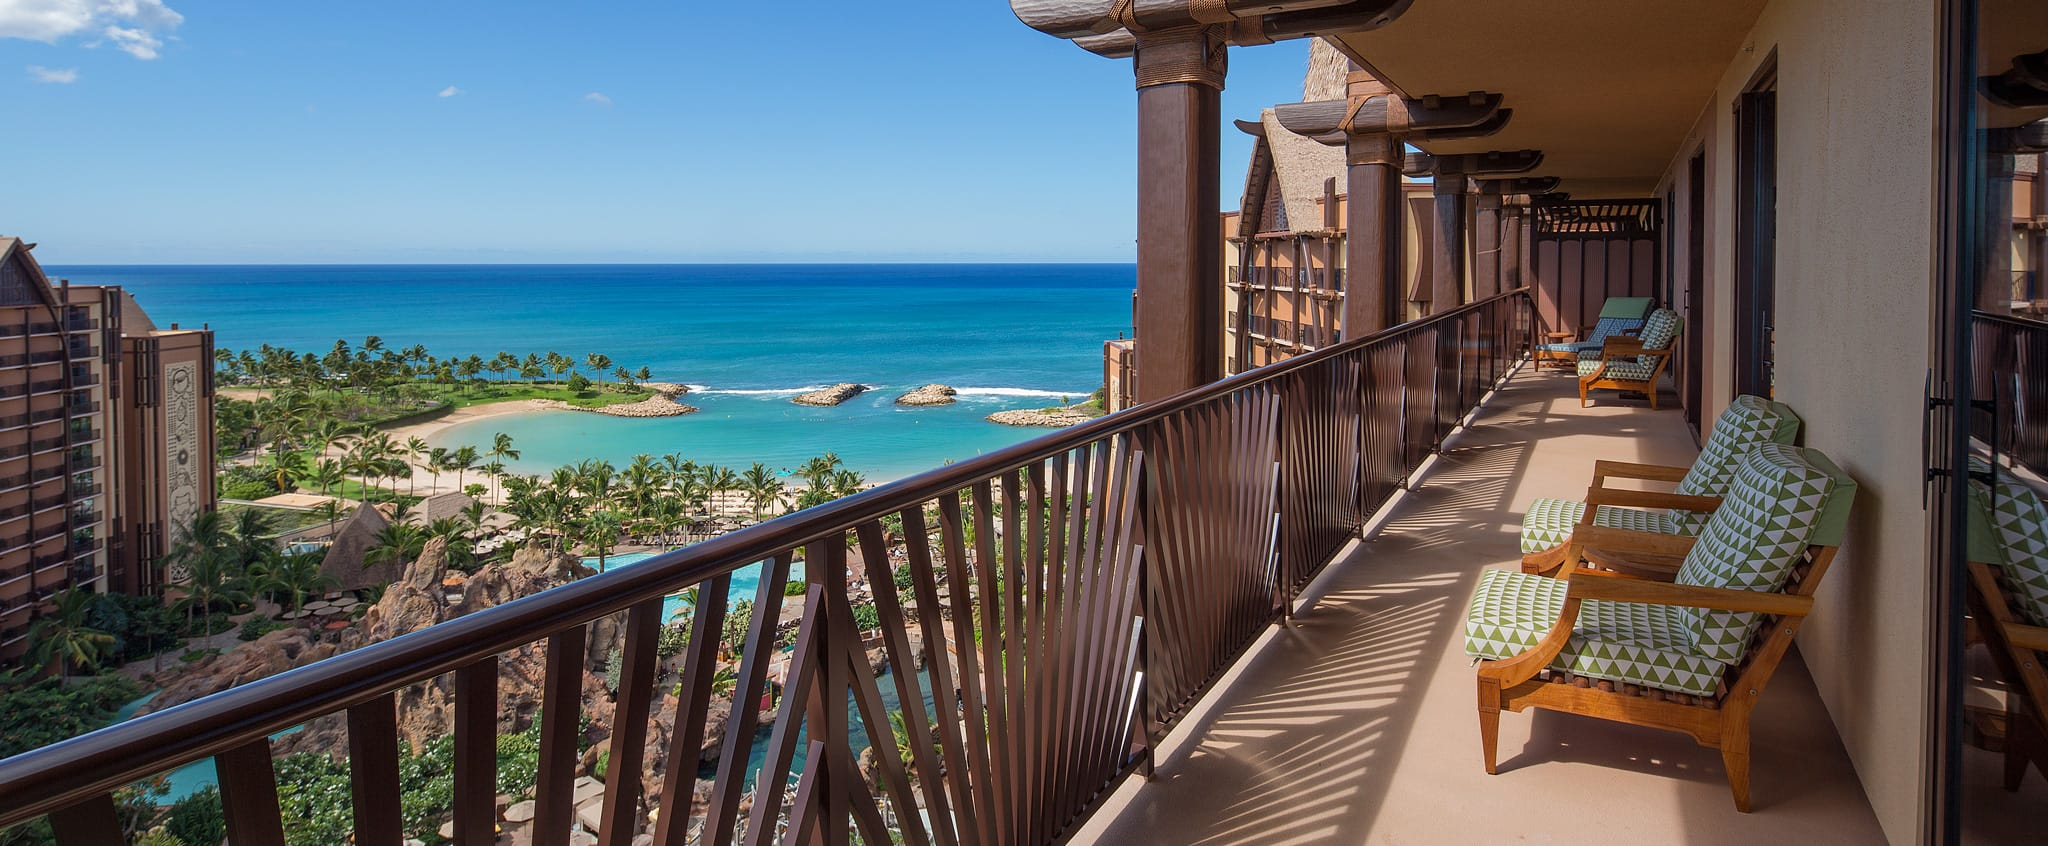 A long balcony at the Aulani features comfortable seating and overlooks the beach and ocean